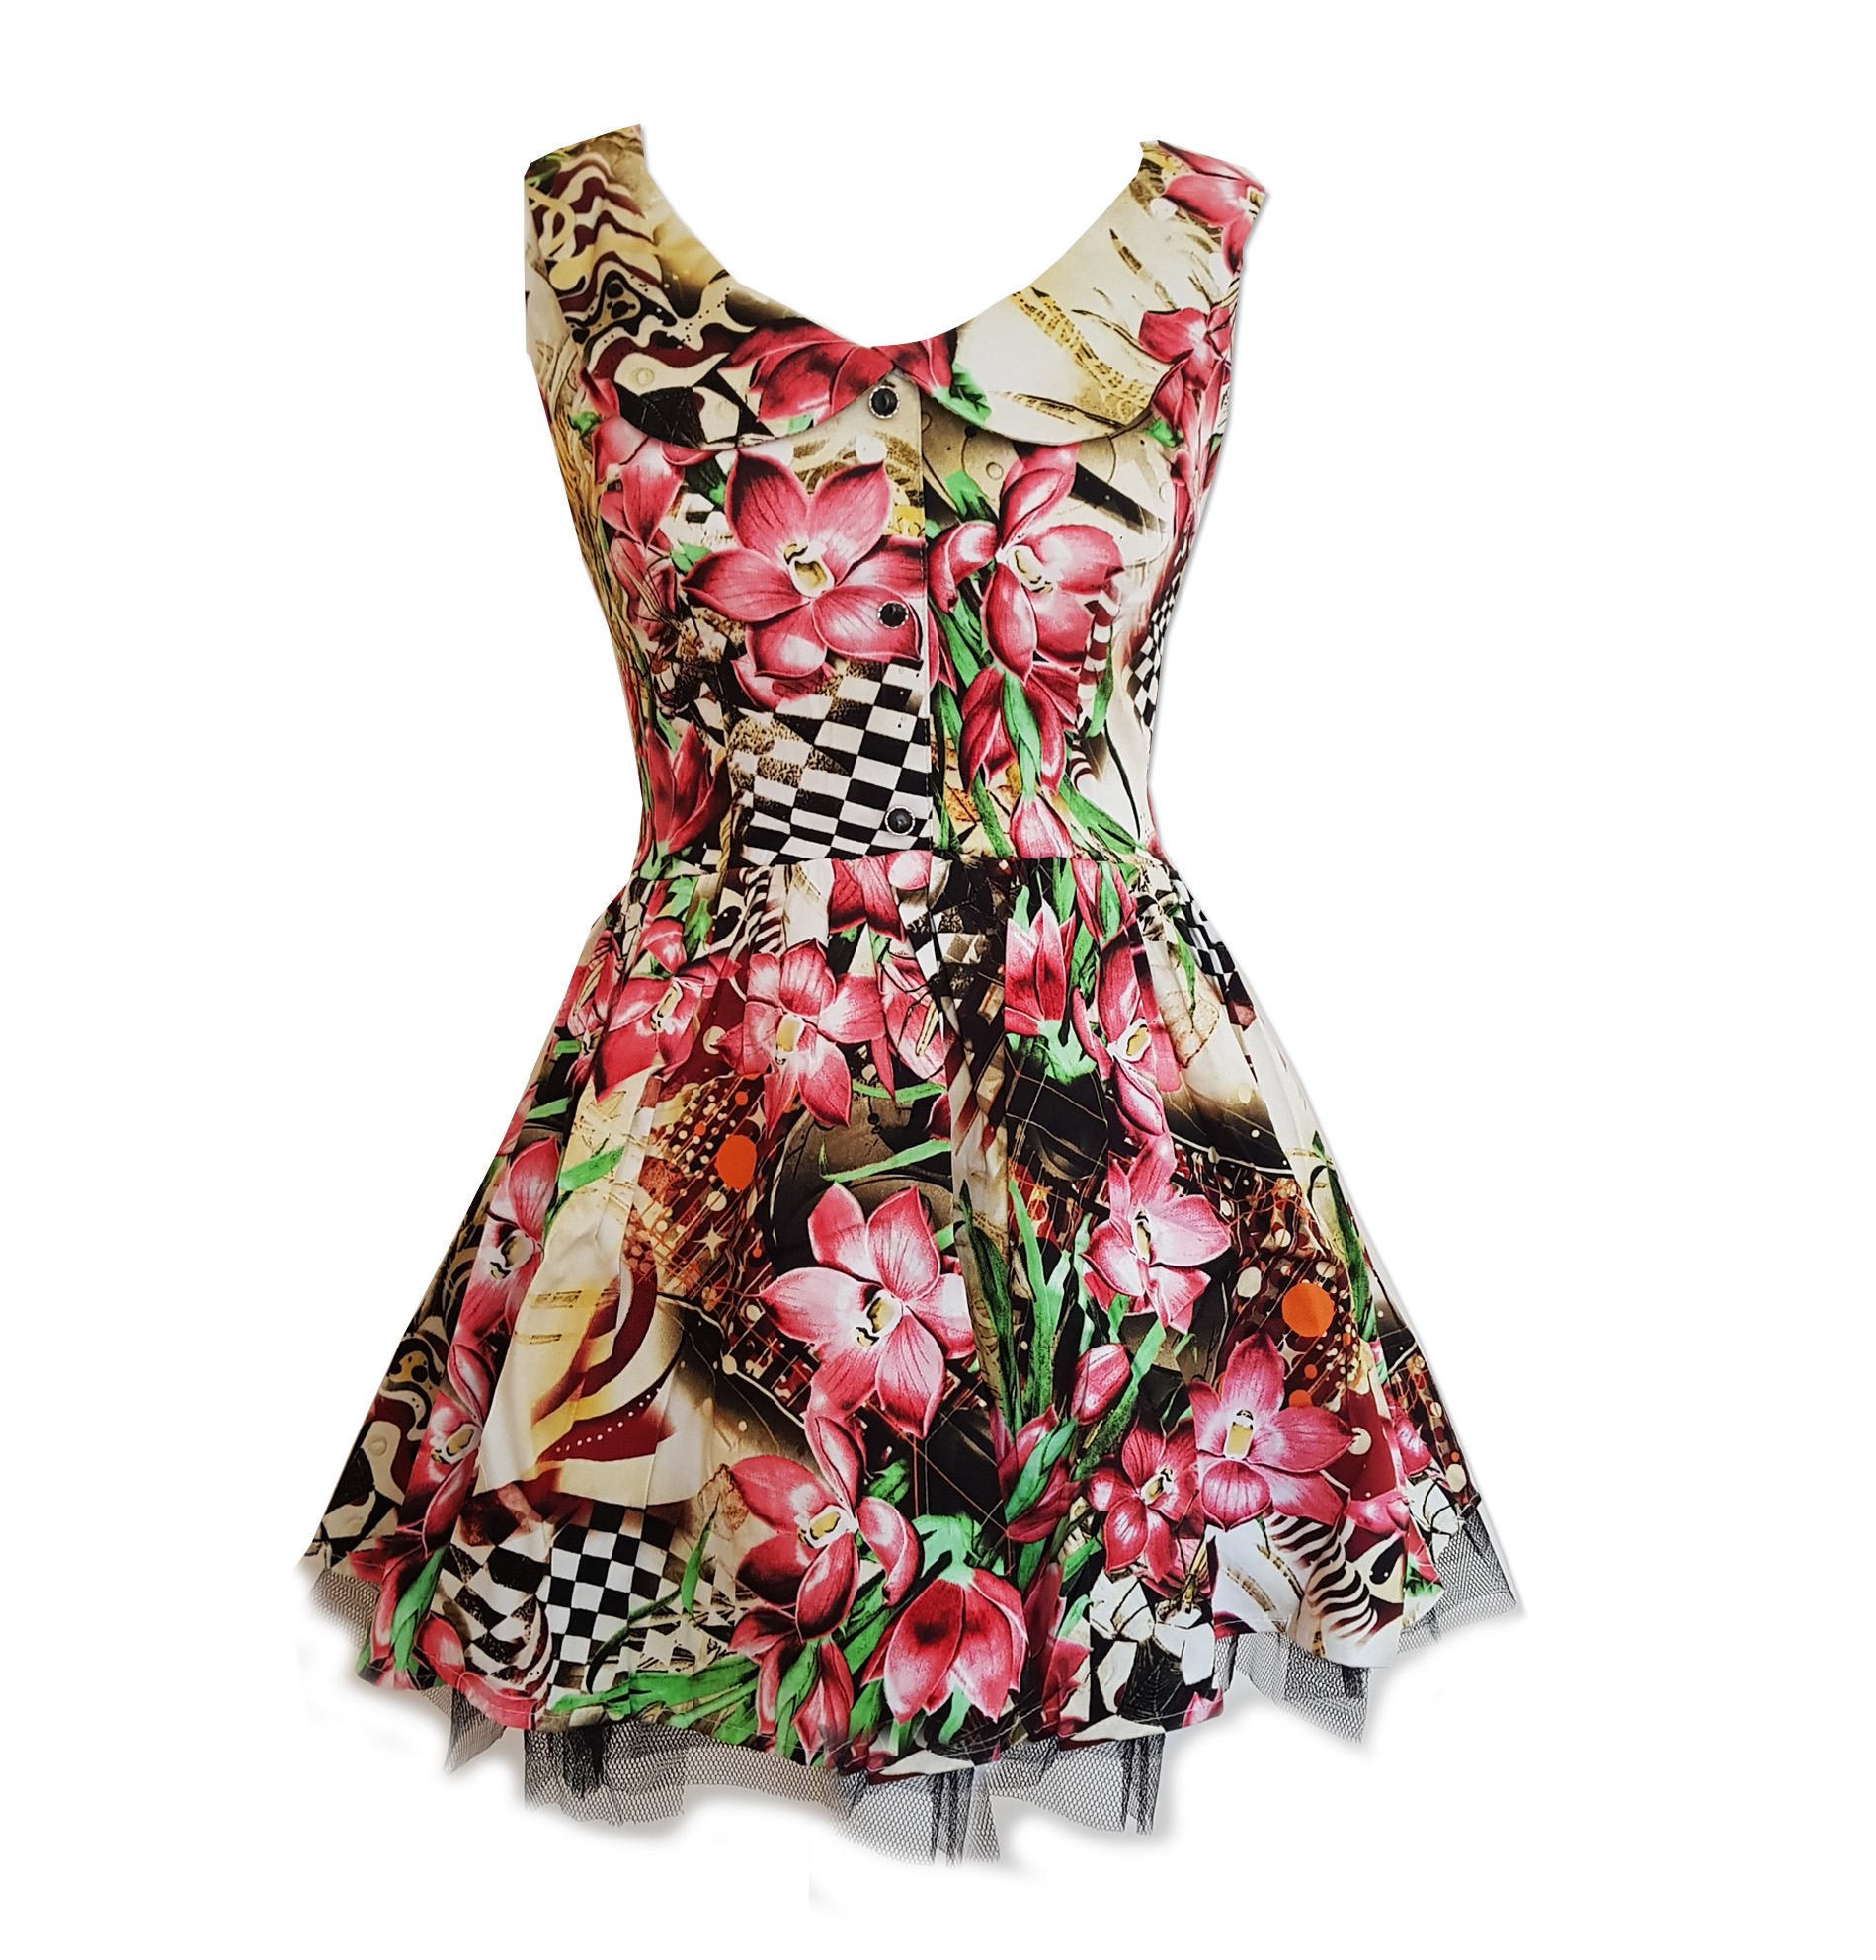 H-amp-R-Hearts-amp-Roses-London-Pink-Mini-Dress-039-Lily-Checkerboard-039-Flowers-All-Sizes thumbnail 11